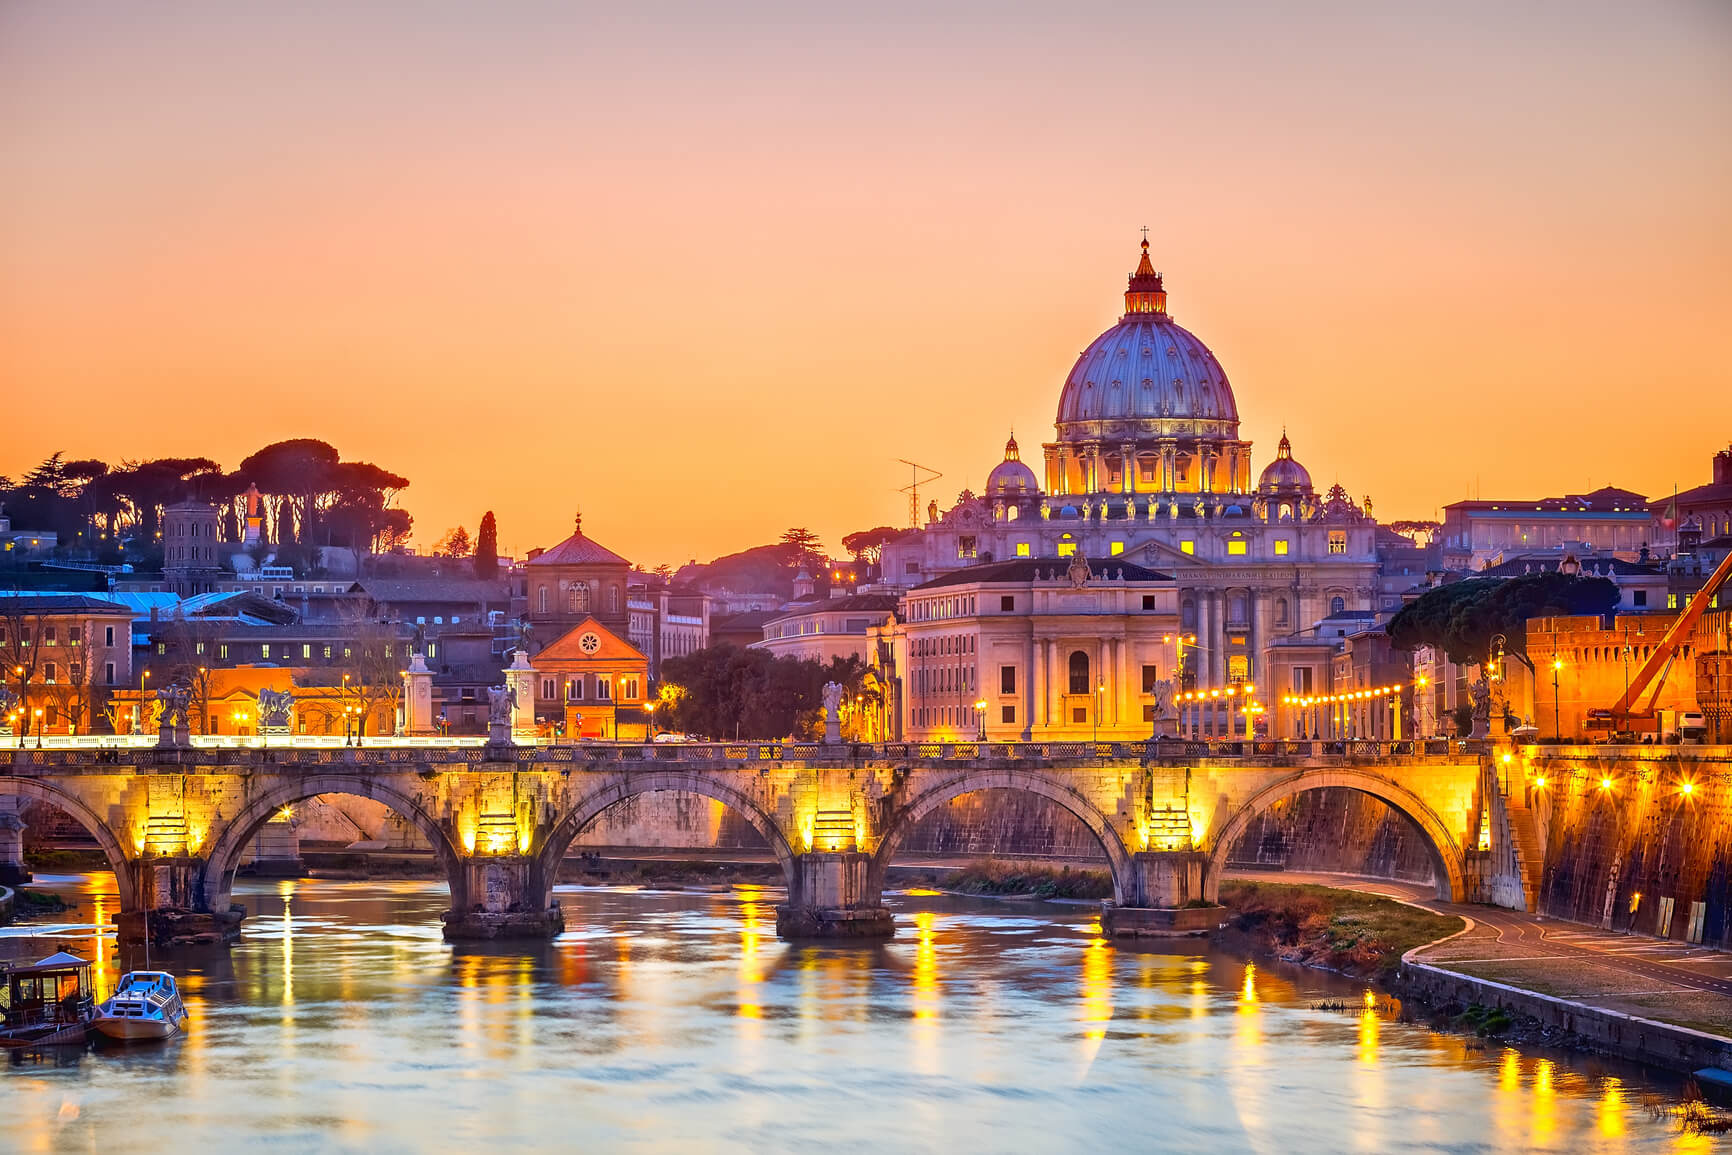 Toronto, Canada to Rome, Italy for only $510 CAD roundtrip (Sep-Apr dates)